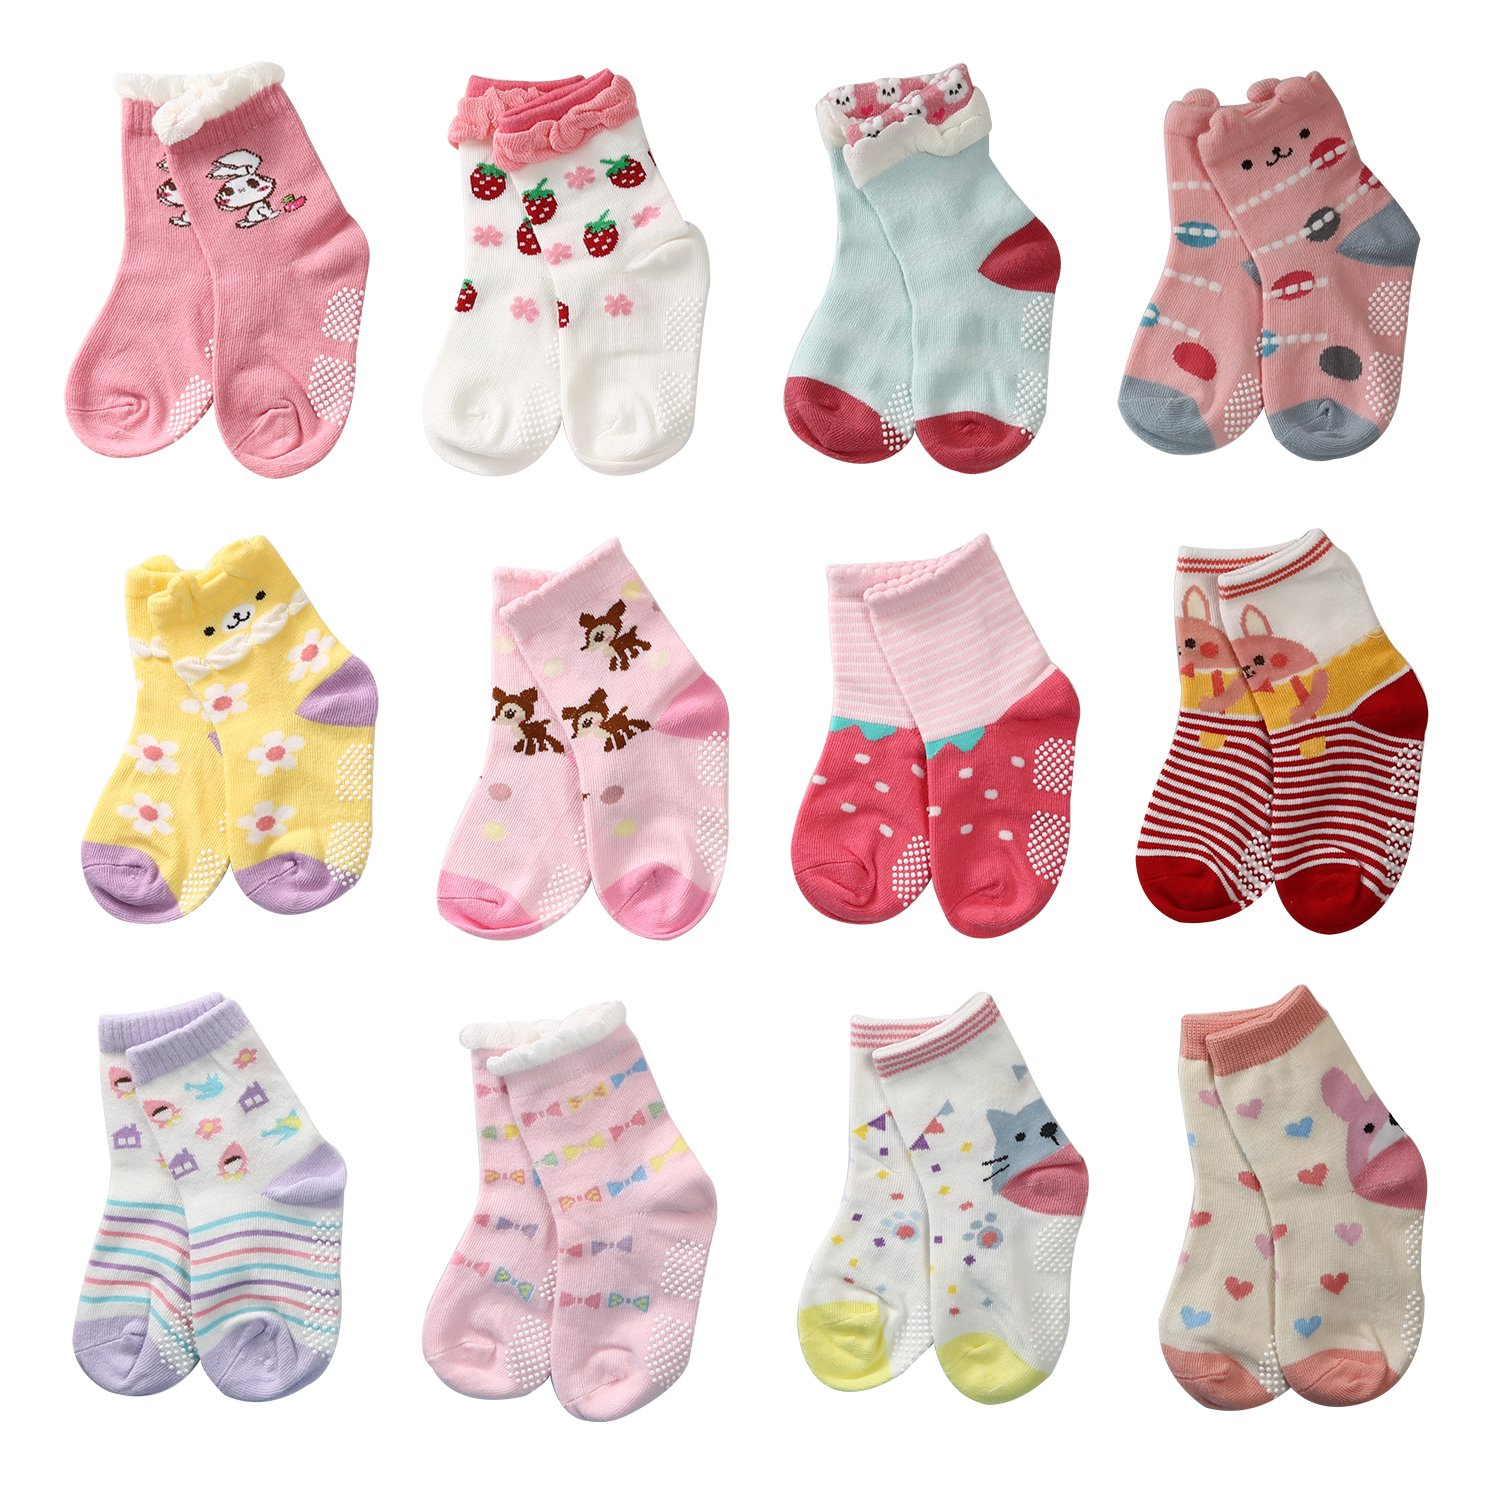 LAISOR 12 Pairs Assorted Non-Skid Ankle Cotton Socks with Grip For Kids Toddlers Baby Girls